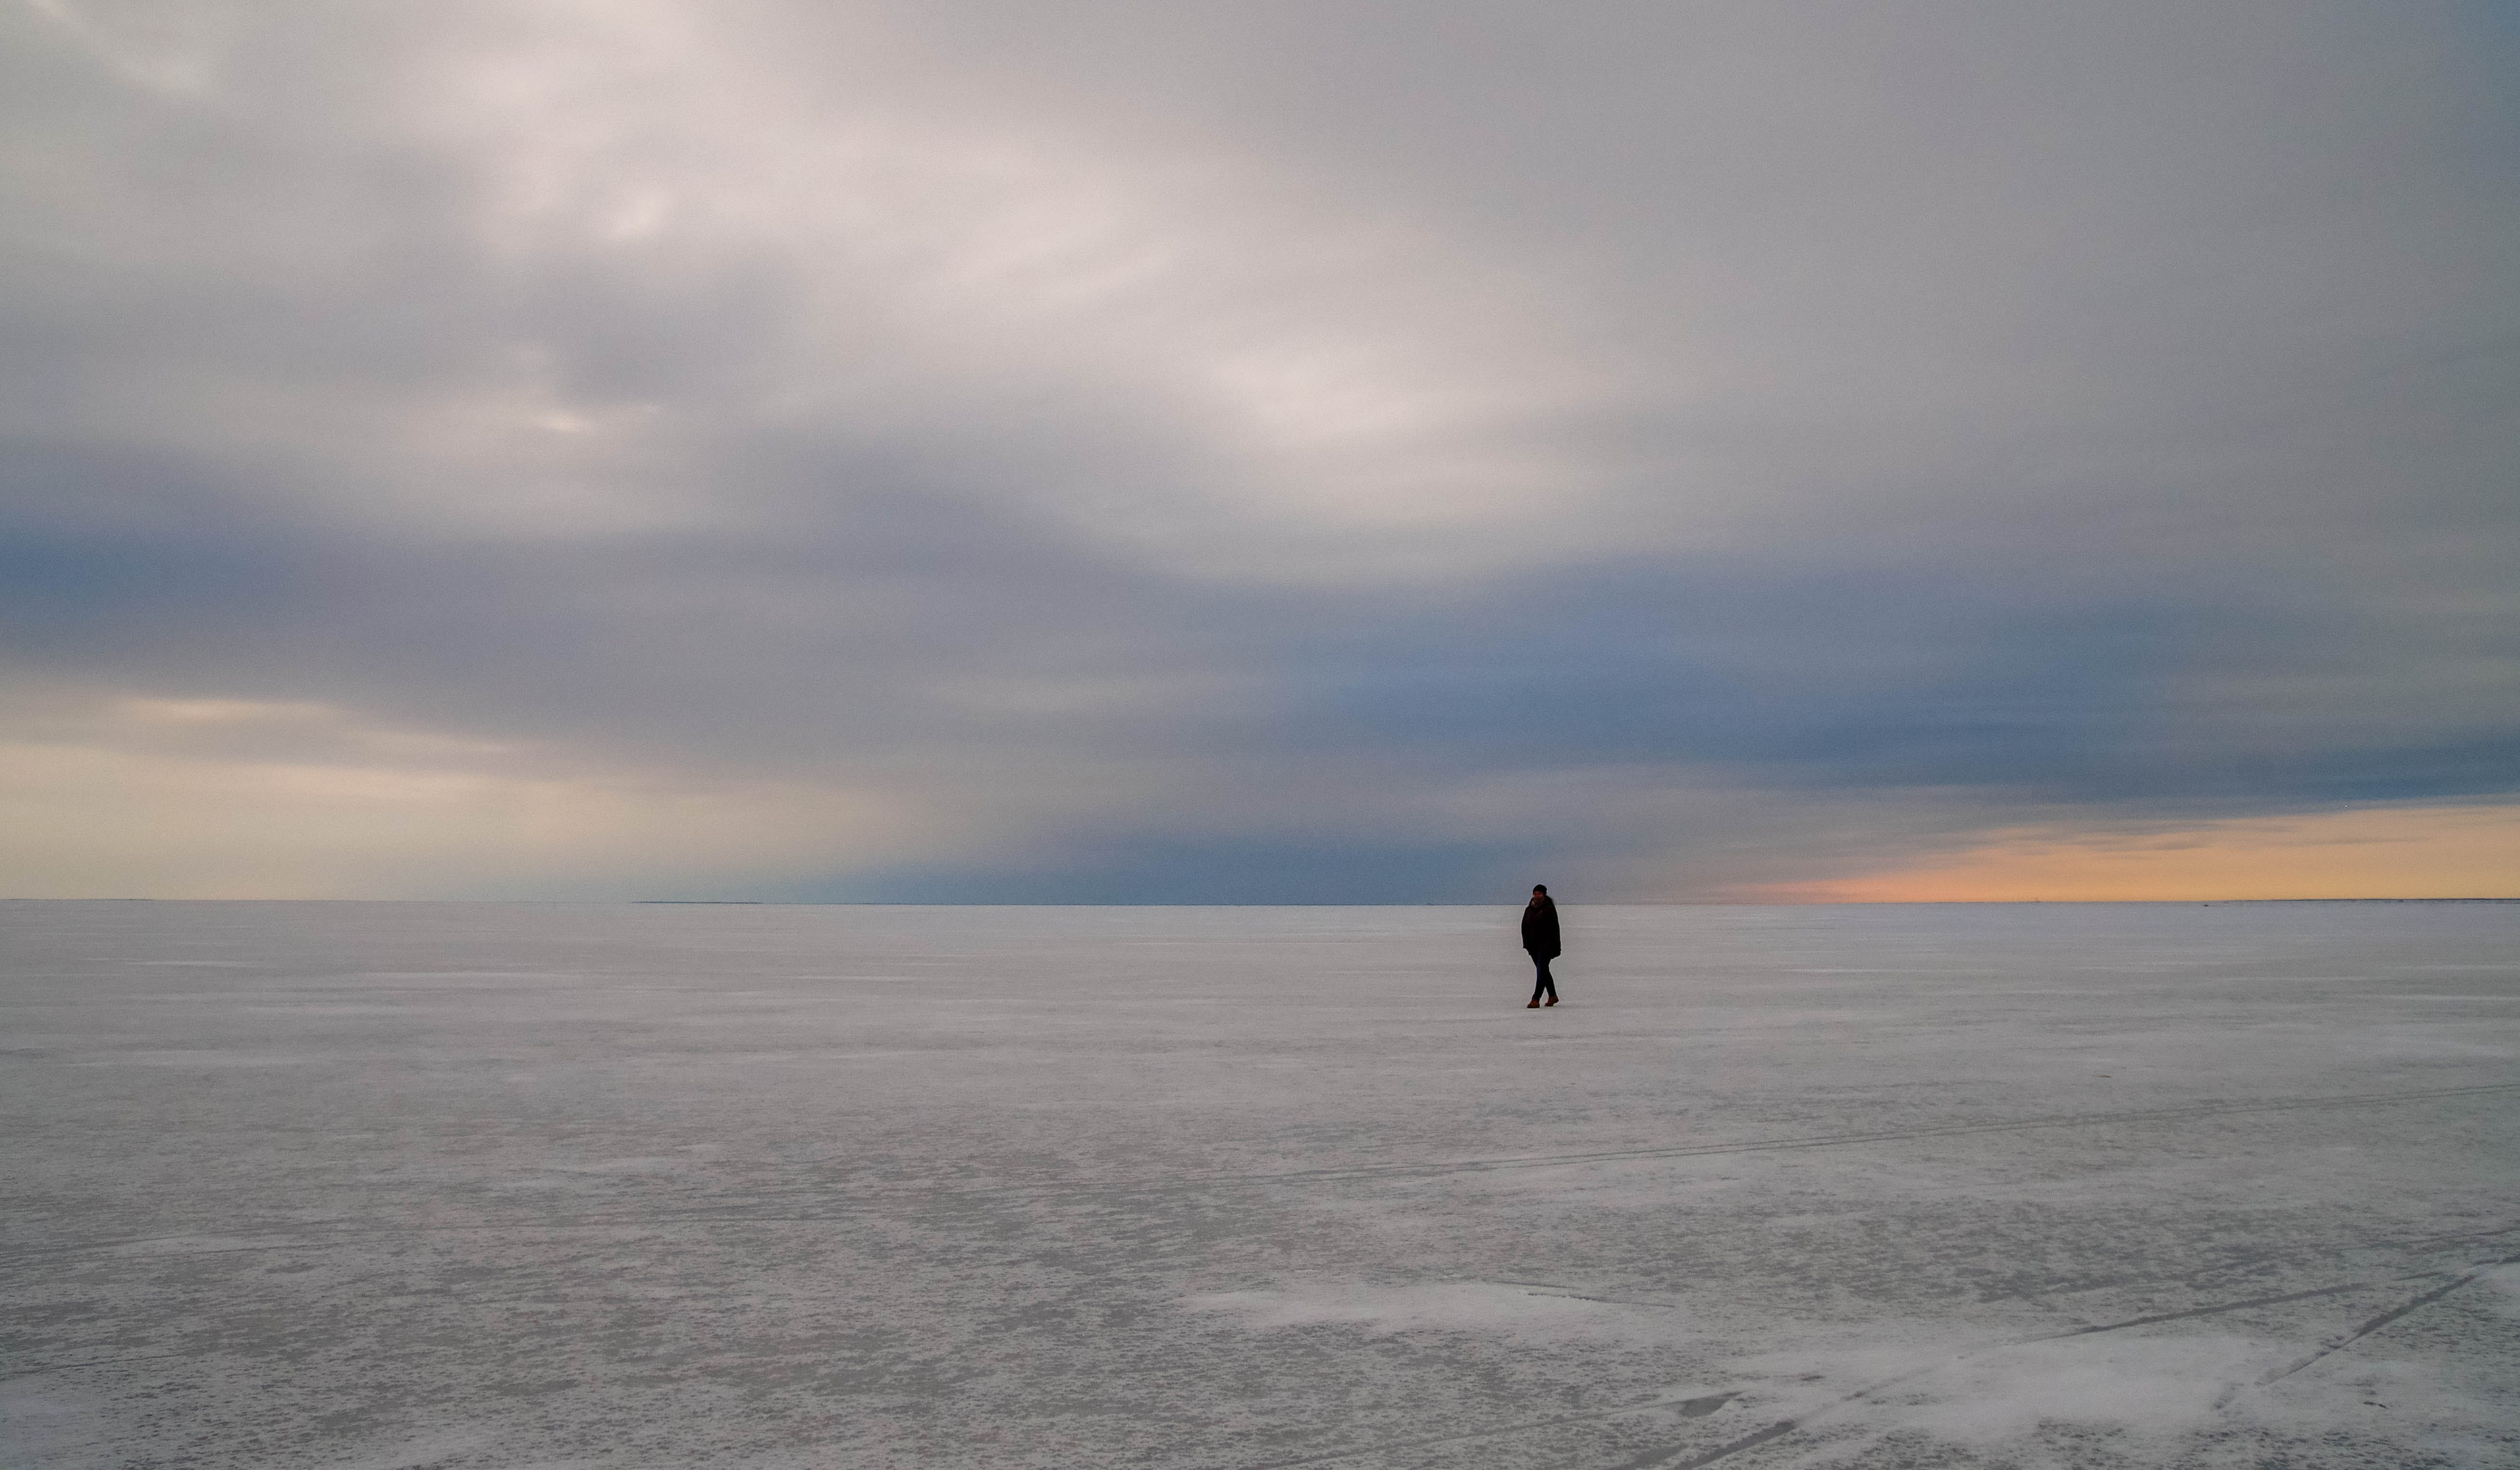 Silhouette of Person Walking on Vast Land